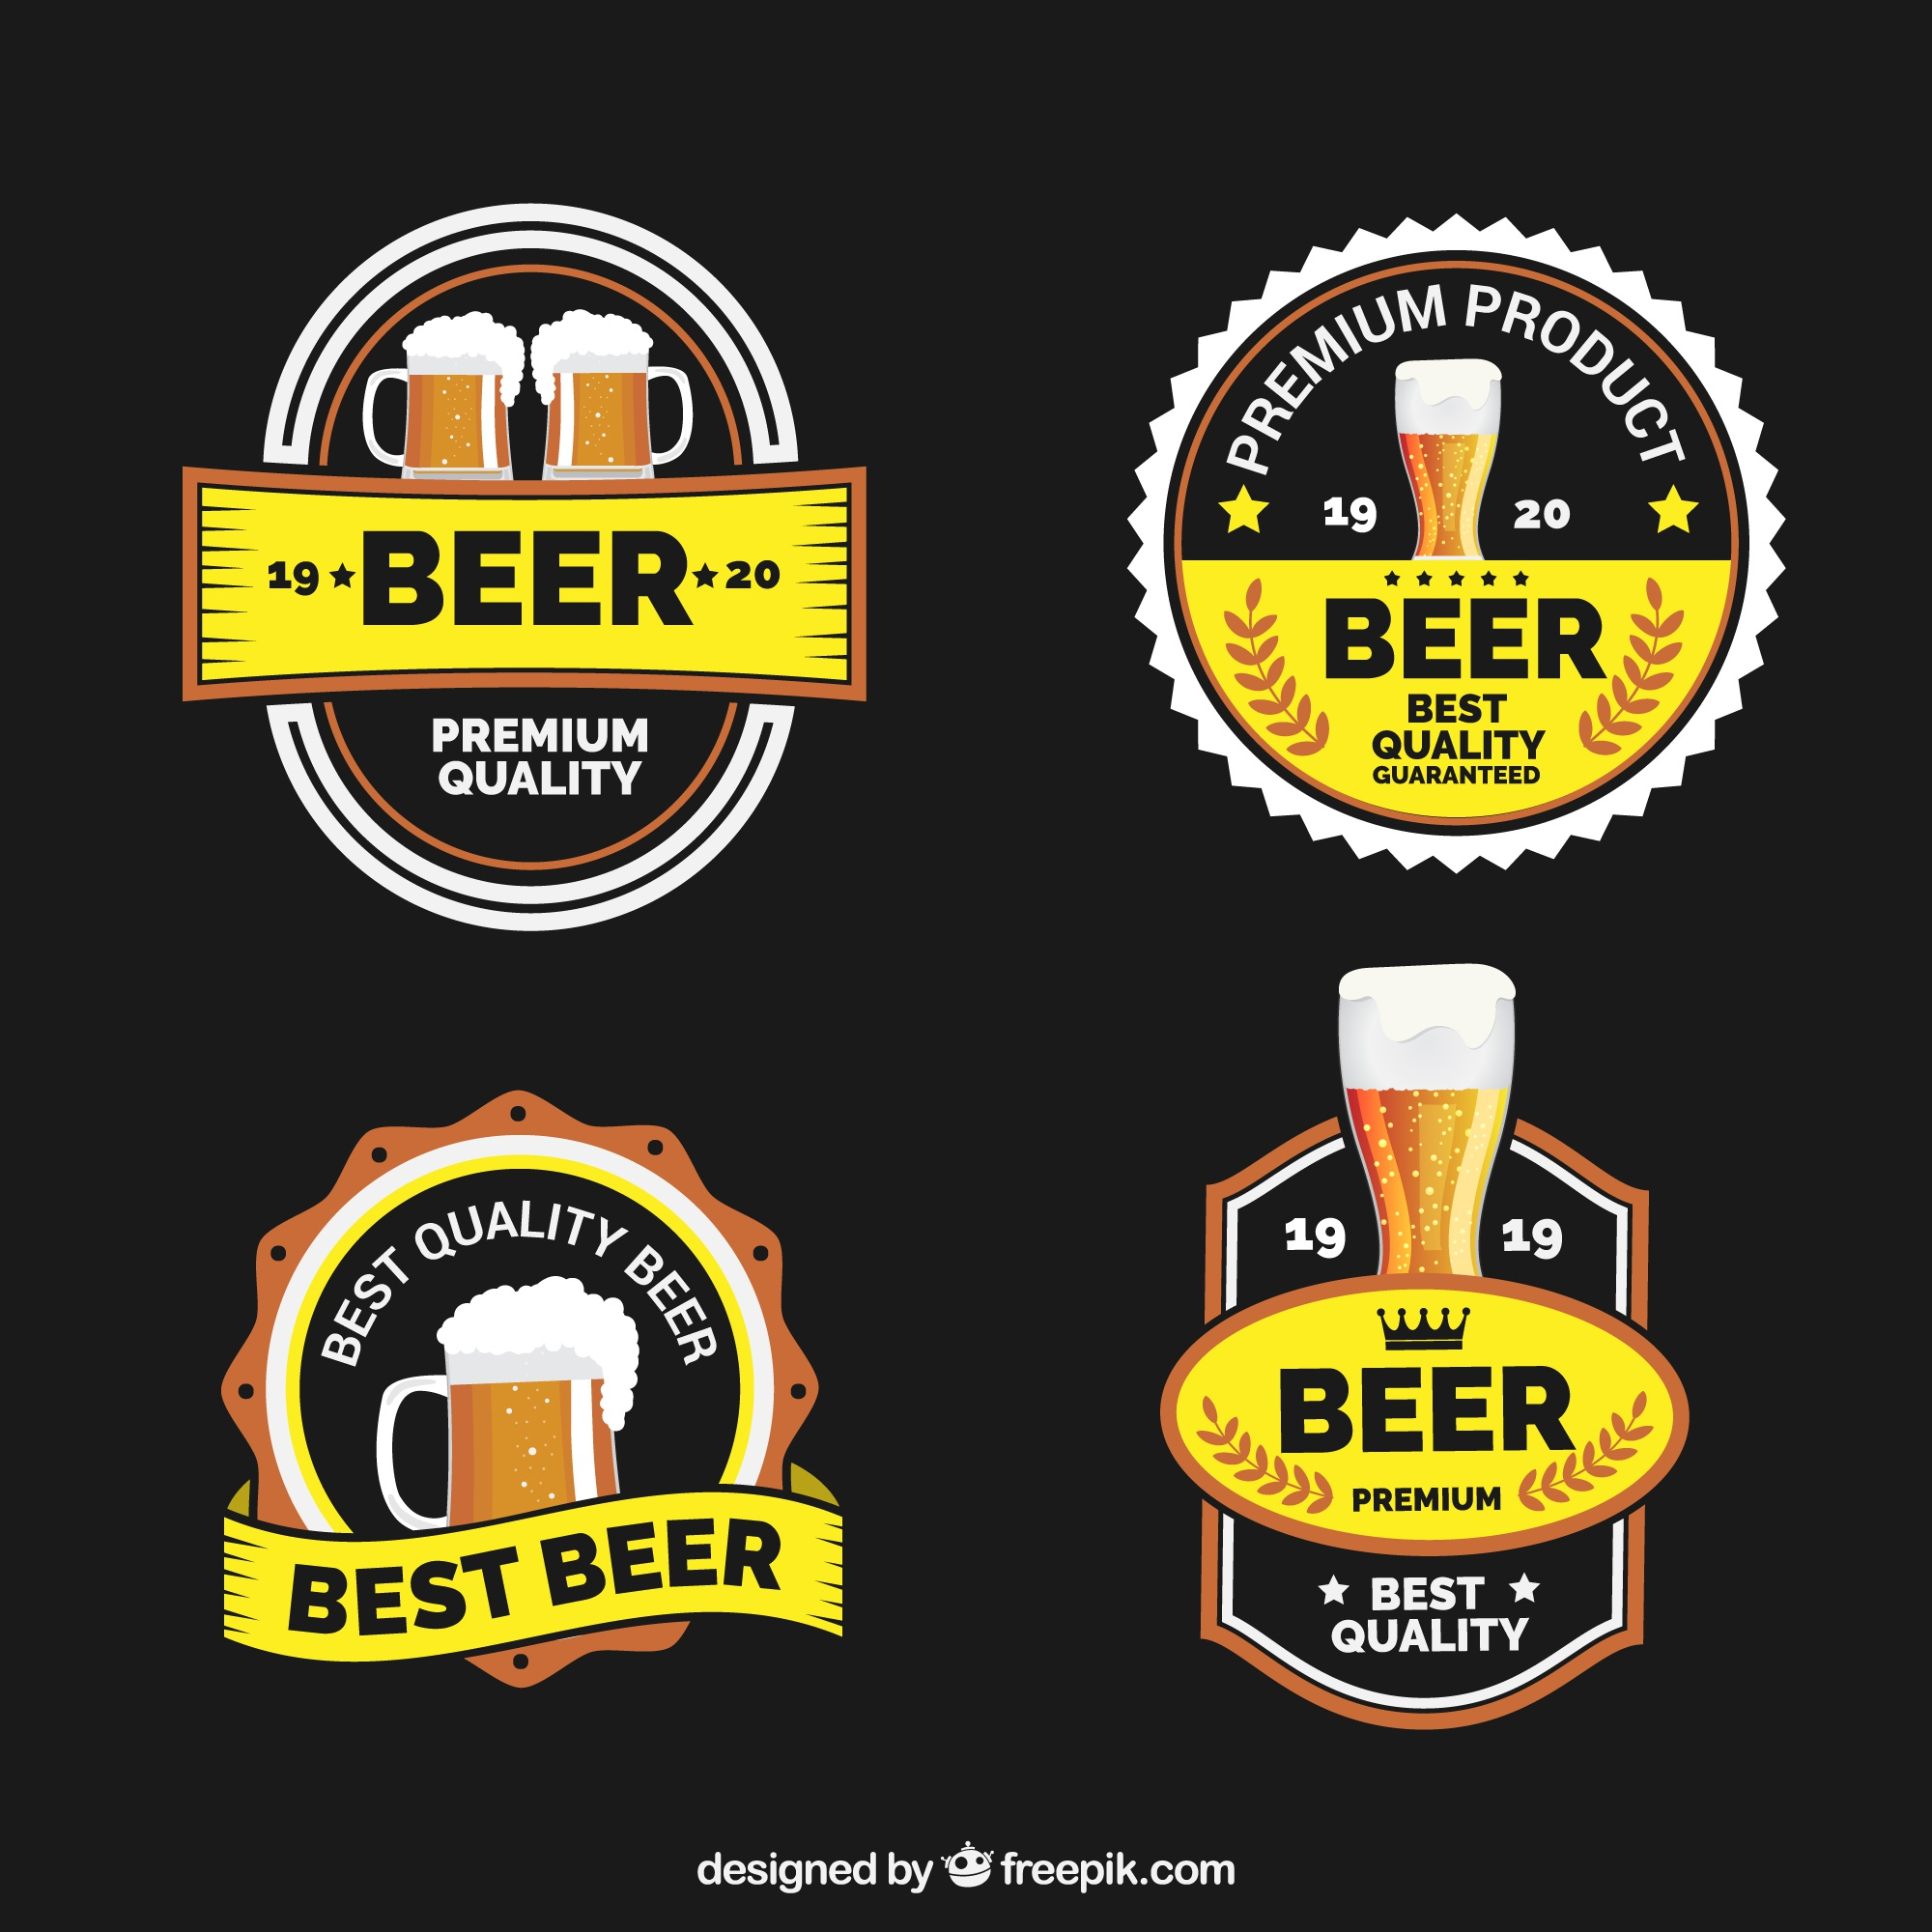 Decorative beer stickers in vintage style